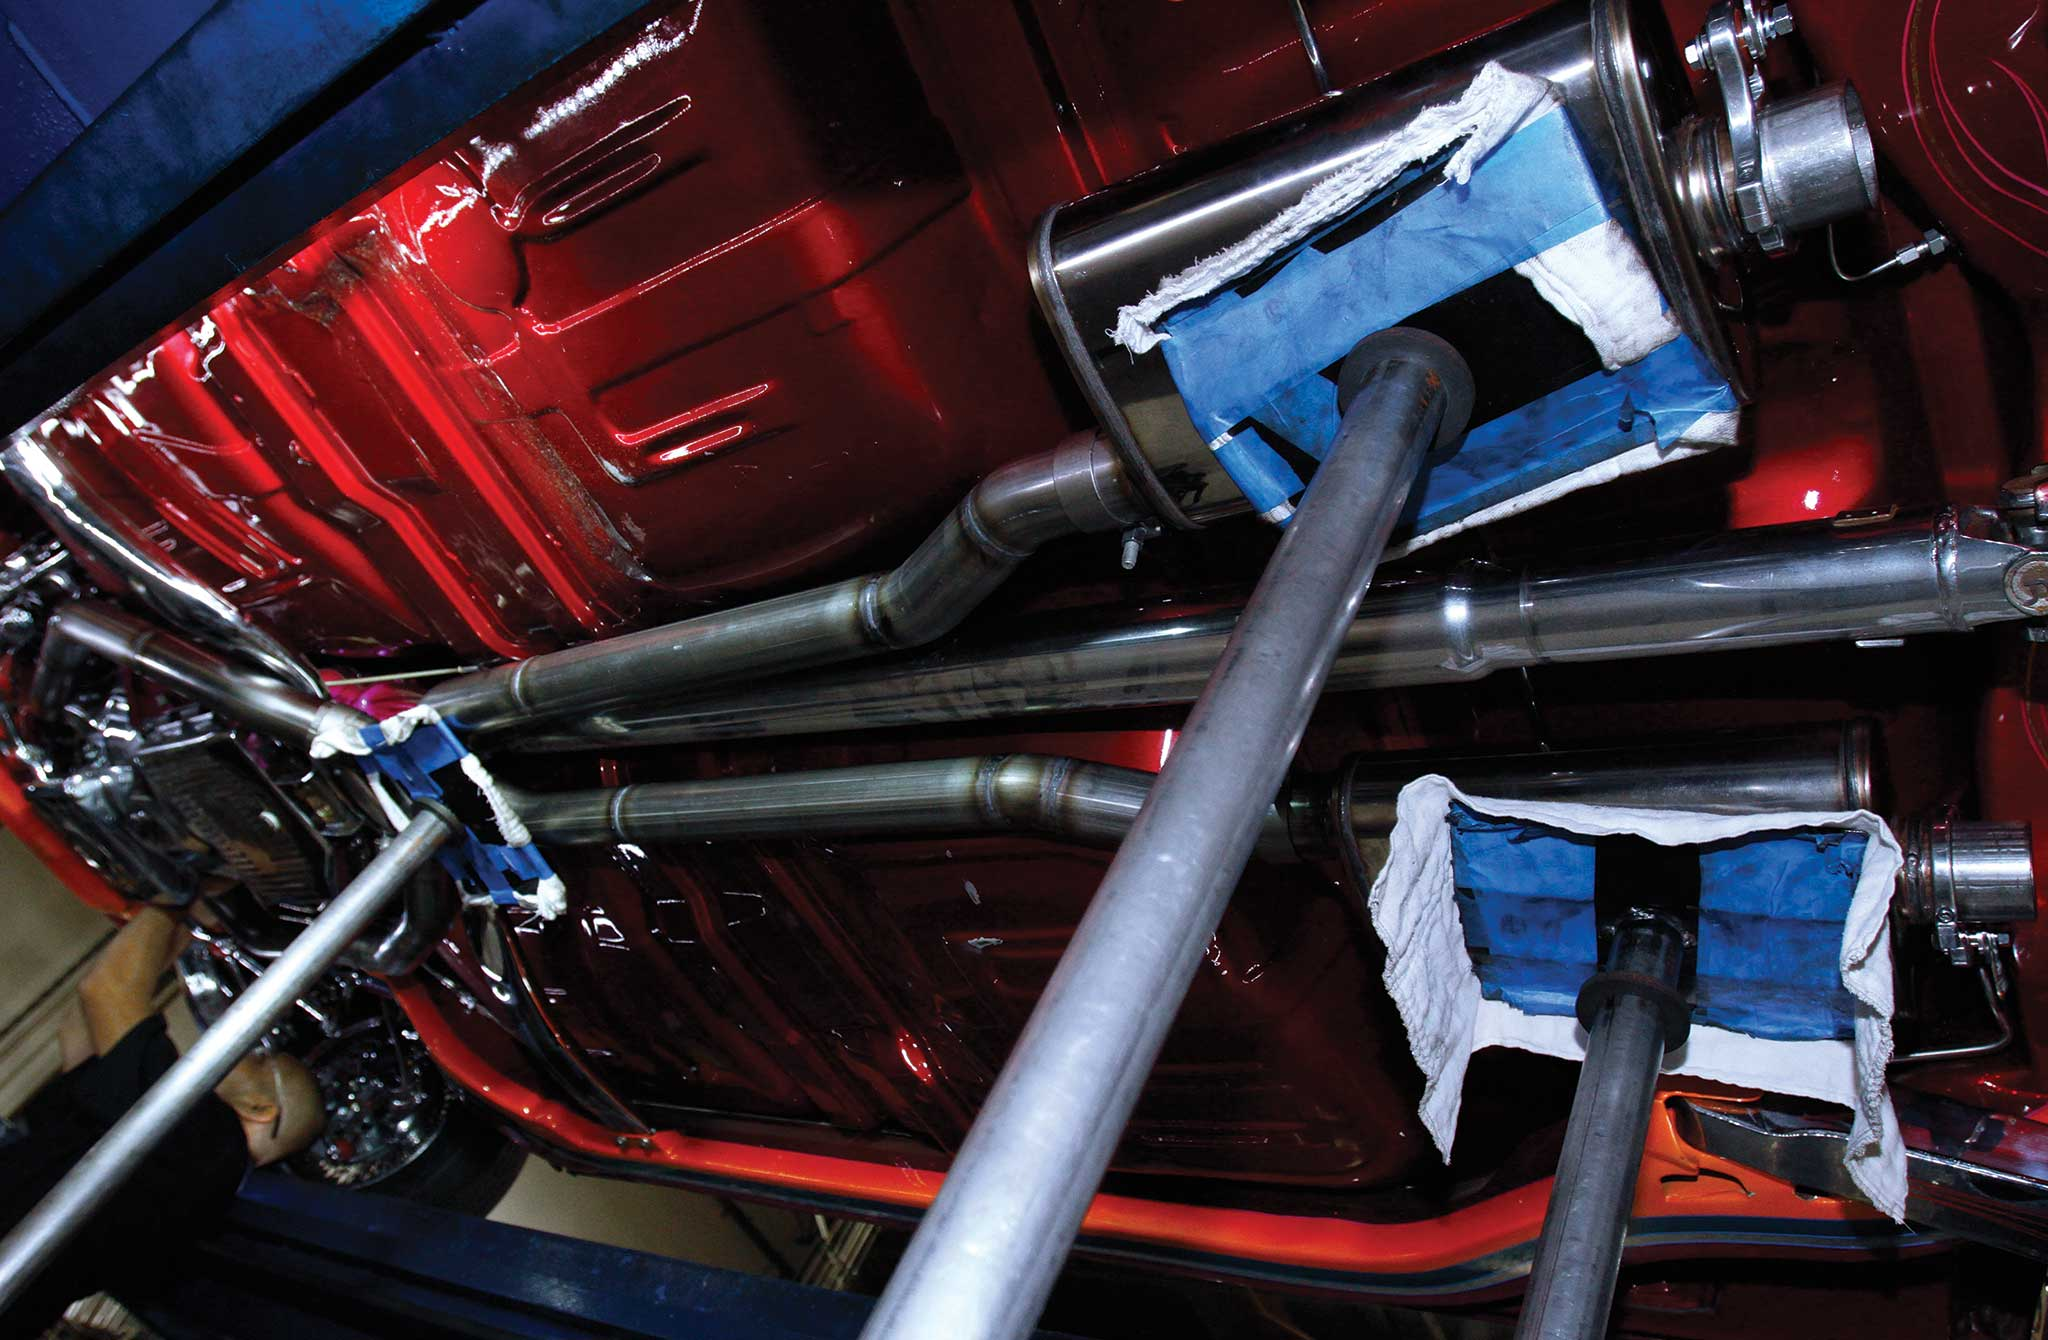 009 magnaflow exhaust install stainless steel mufflers